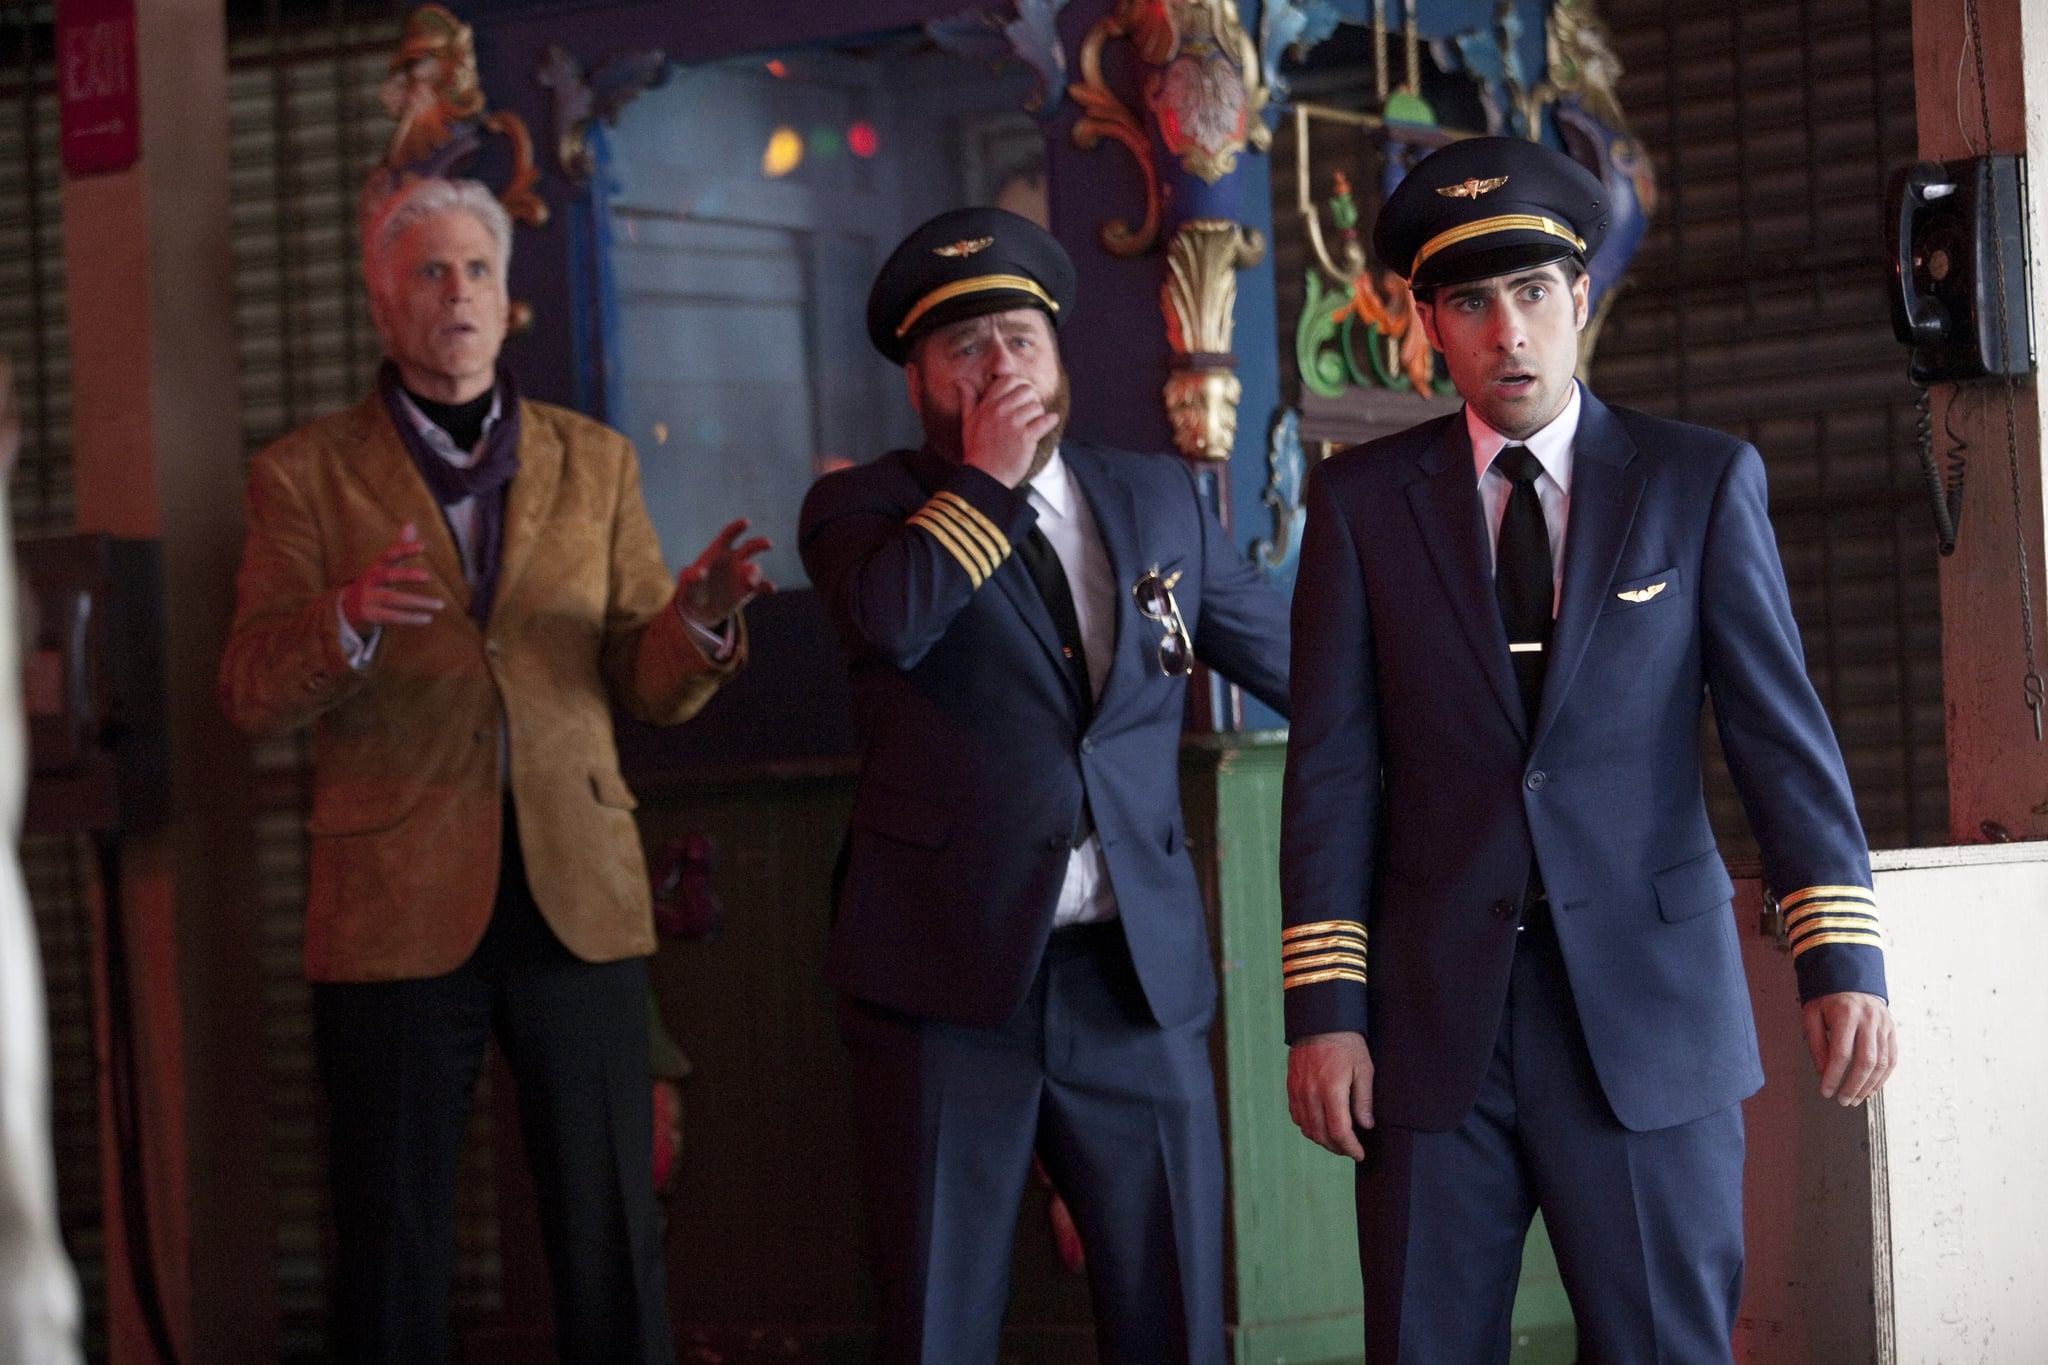 Ted Danson As George Christopher Jason Schwartzman As Jonathan Ames Bored To Death Returns Tonight Take A Look At Season 3 Popsugar Entertainment Photo 8